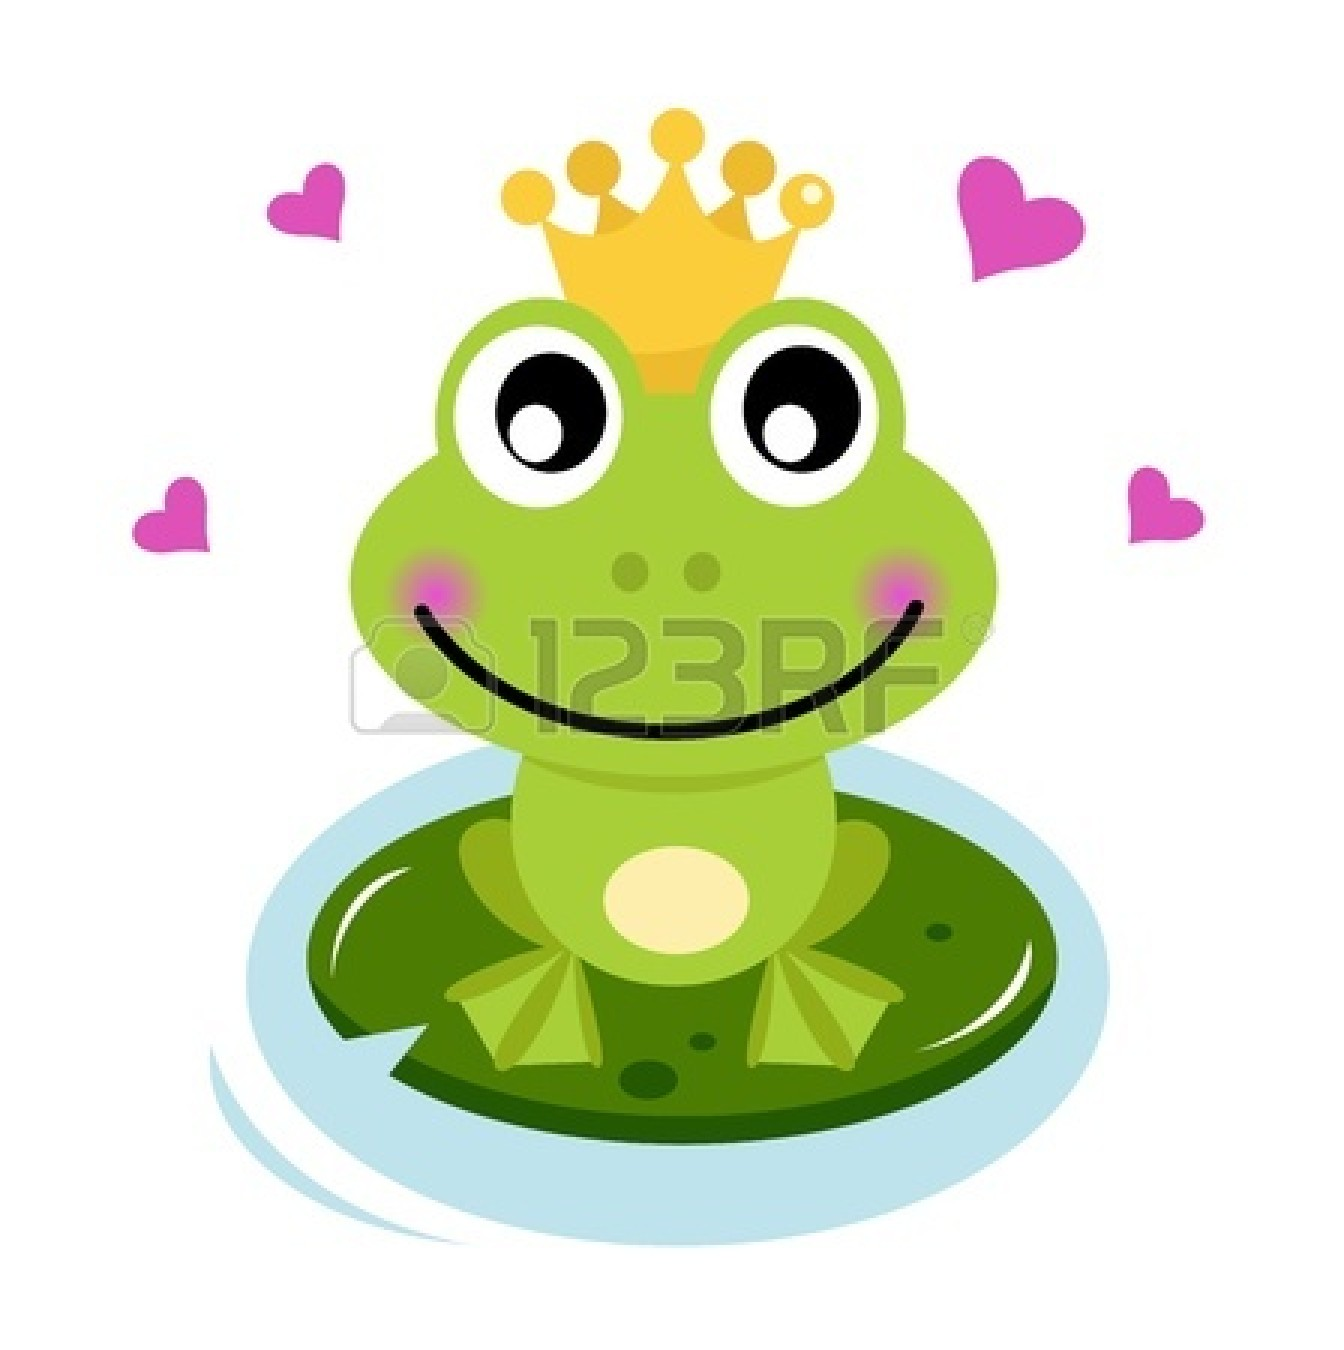 Baby frog cartoon clipart image download Cute Baby Frog Panda Free Images clipart free image image download